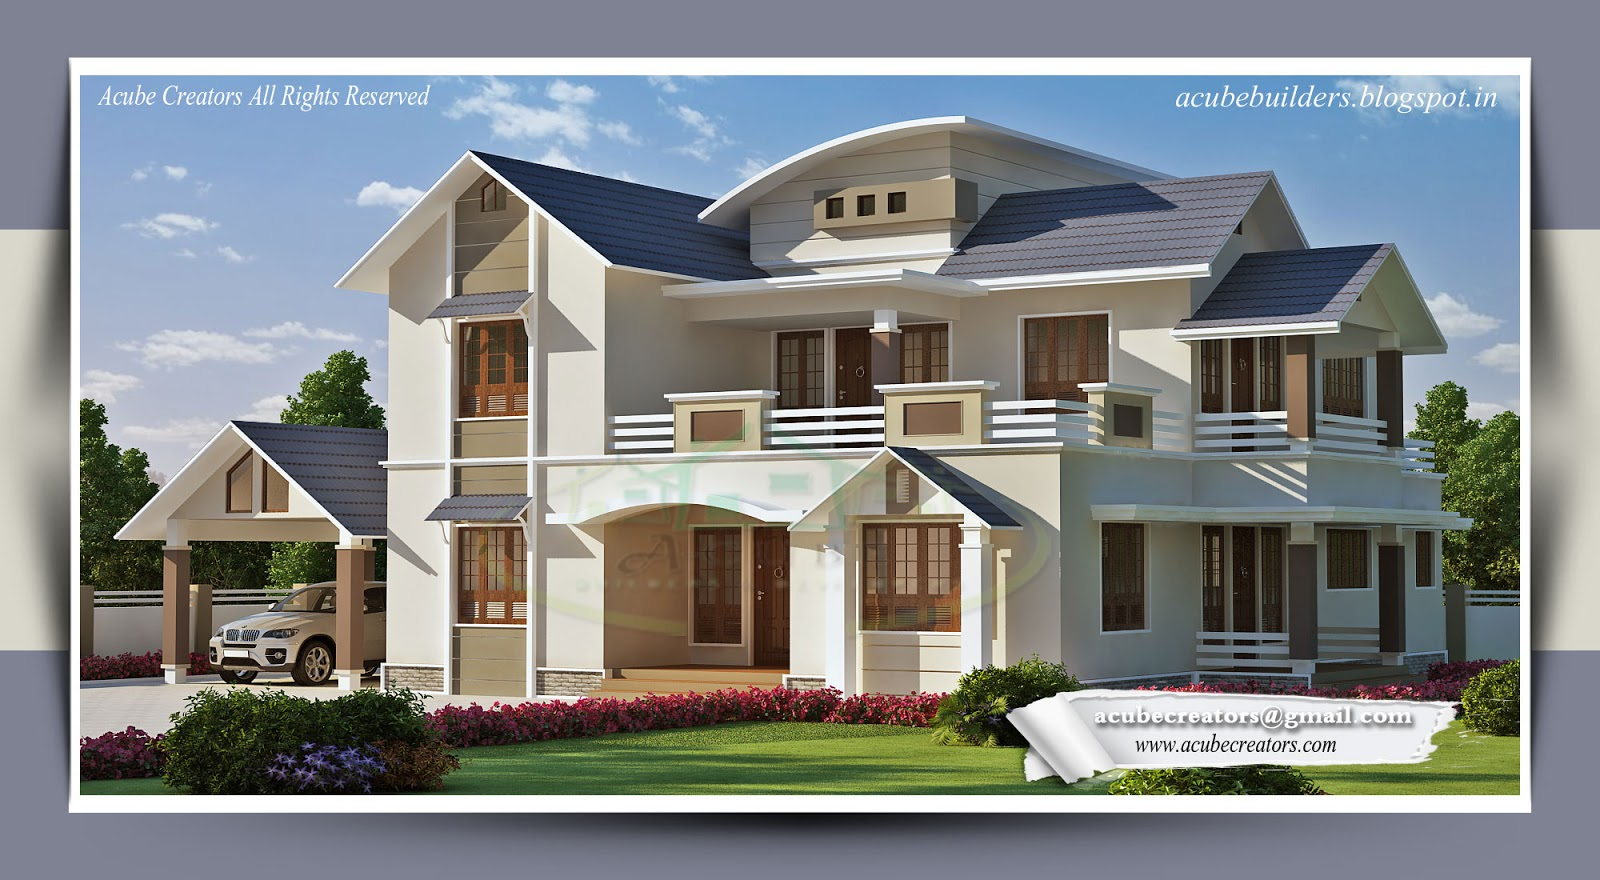 bungalow house designs simple bungalow house design philippines lrg 59bfc351271e58a8 - 29+ Modern House Design And Floor Plans In The Philippines Images